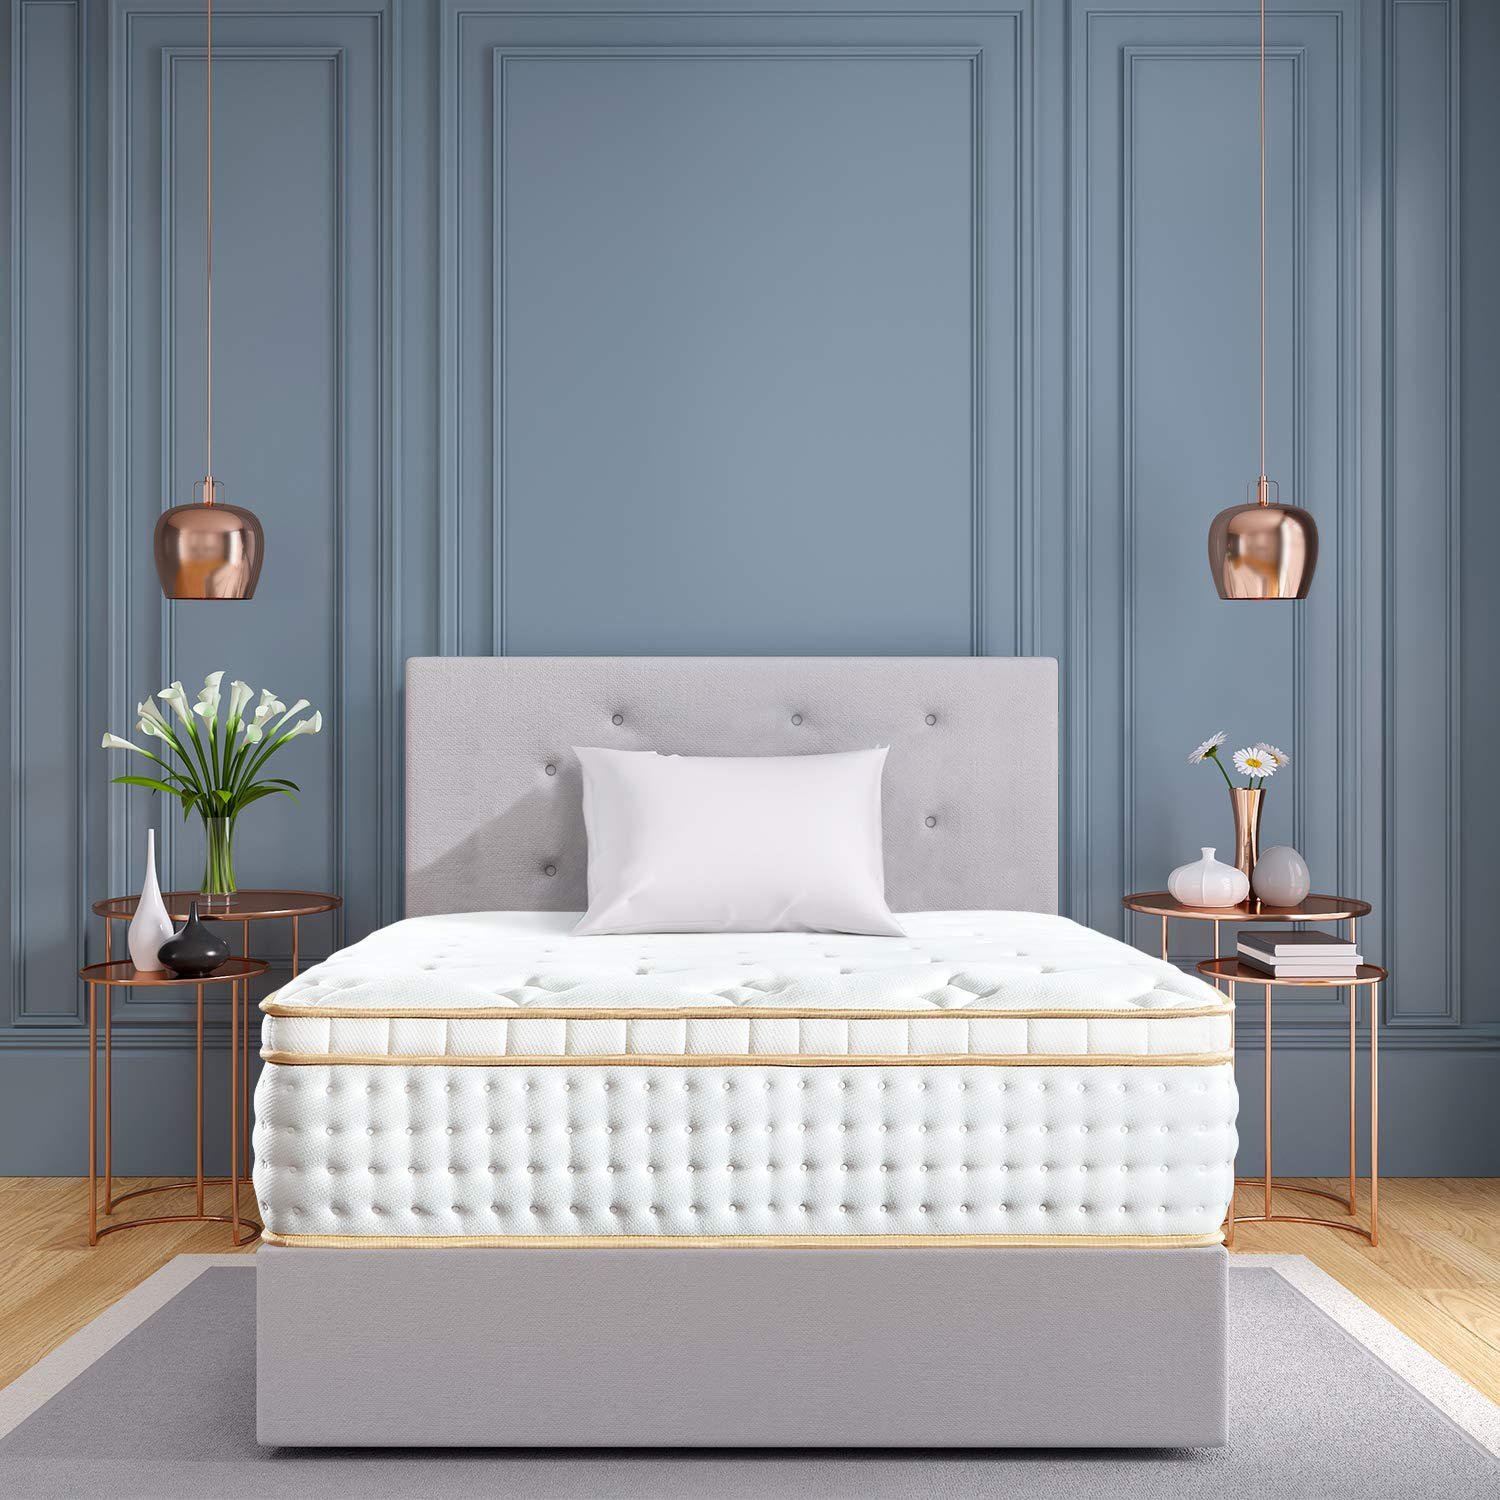 BedStory 12 inch Twin XL Mattress, Gel Infused Memory Foam Mattress with Pocket Coil and Euro Top Bed Mattress